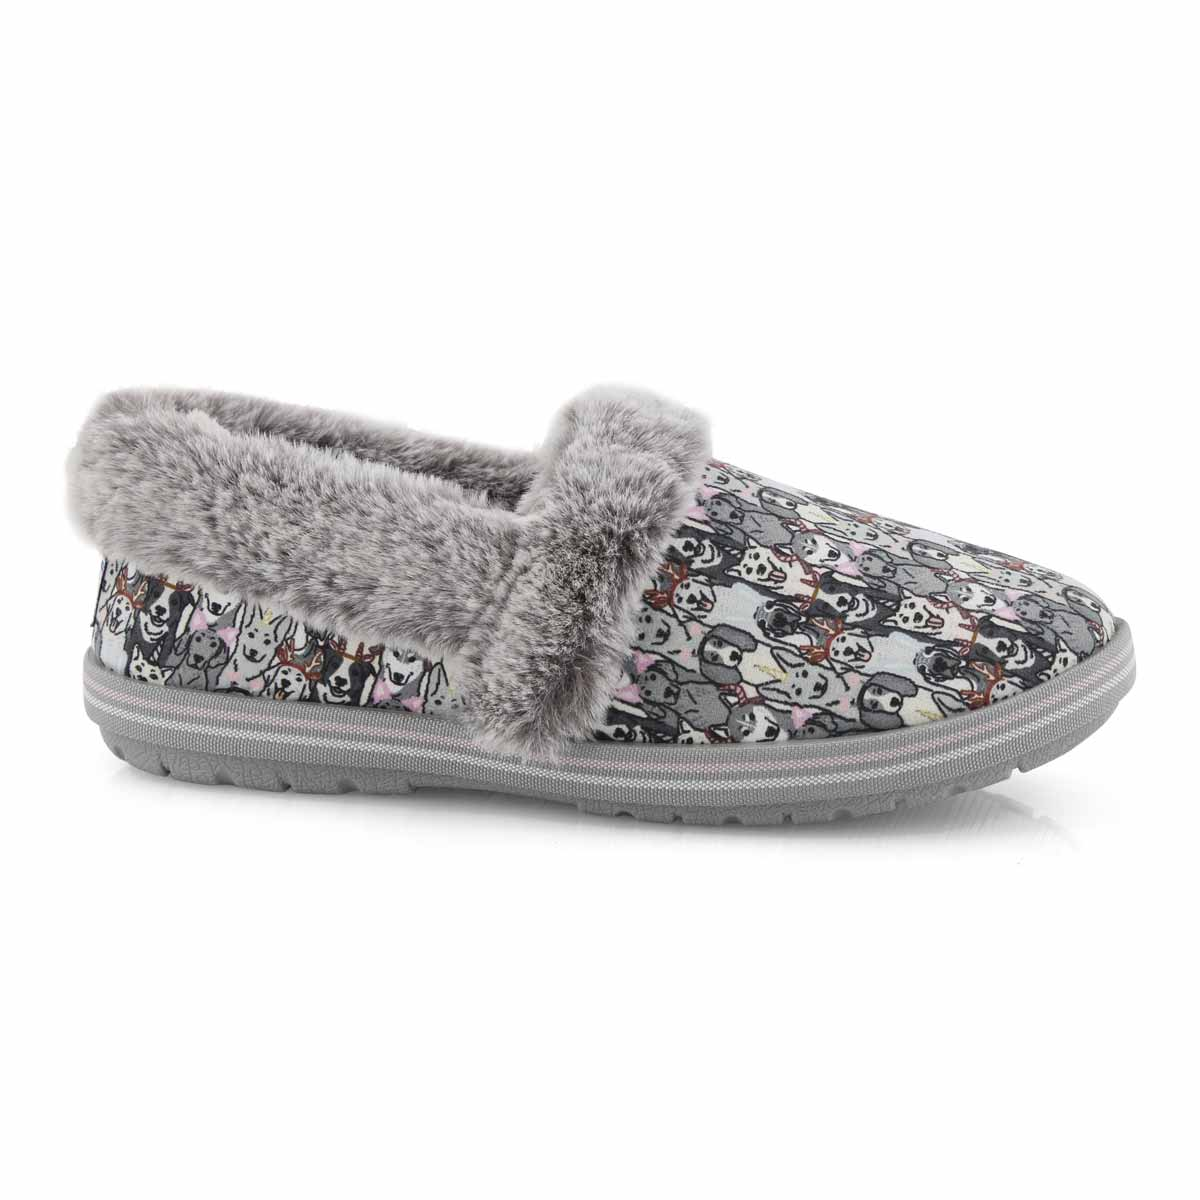 Lds Bobs Too Cozy grey/multi slipper